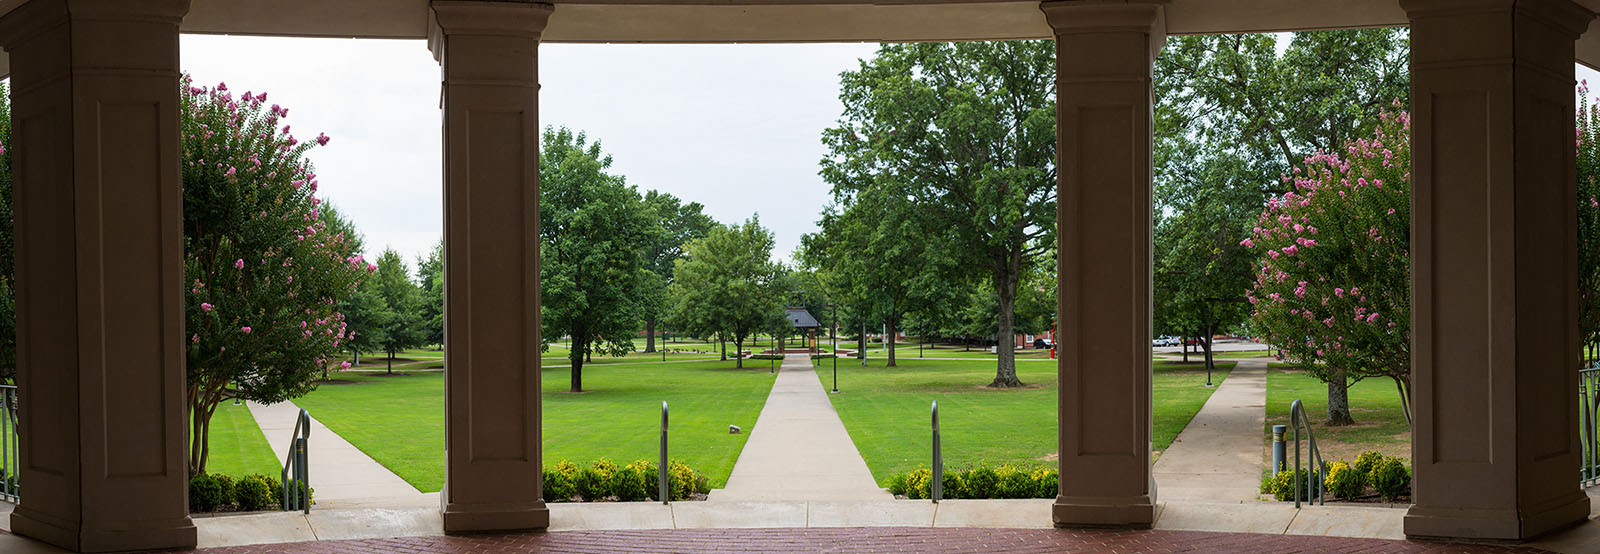 photo of the belltower quad as seen from the library porch